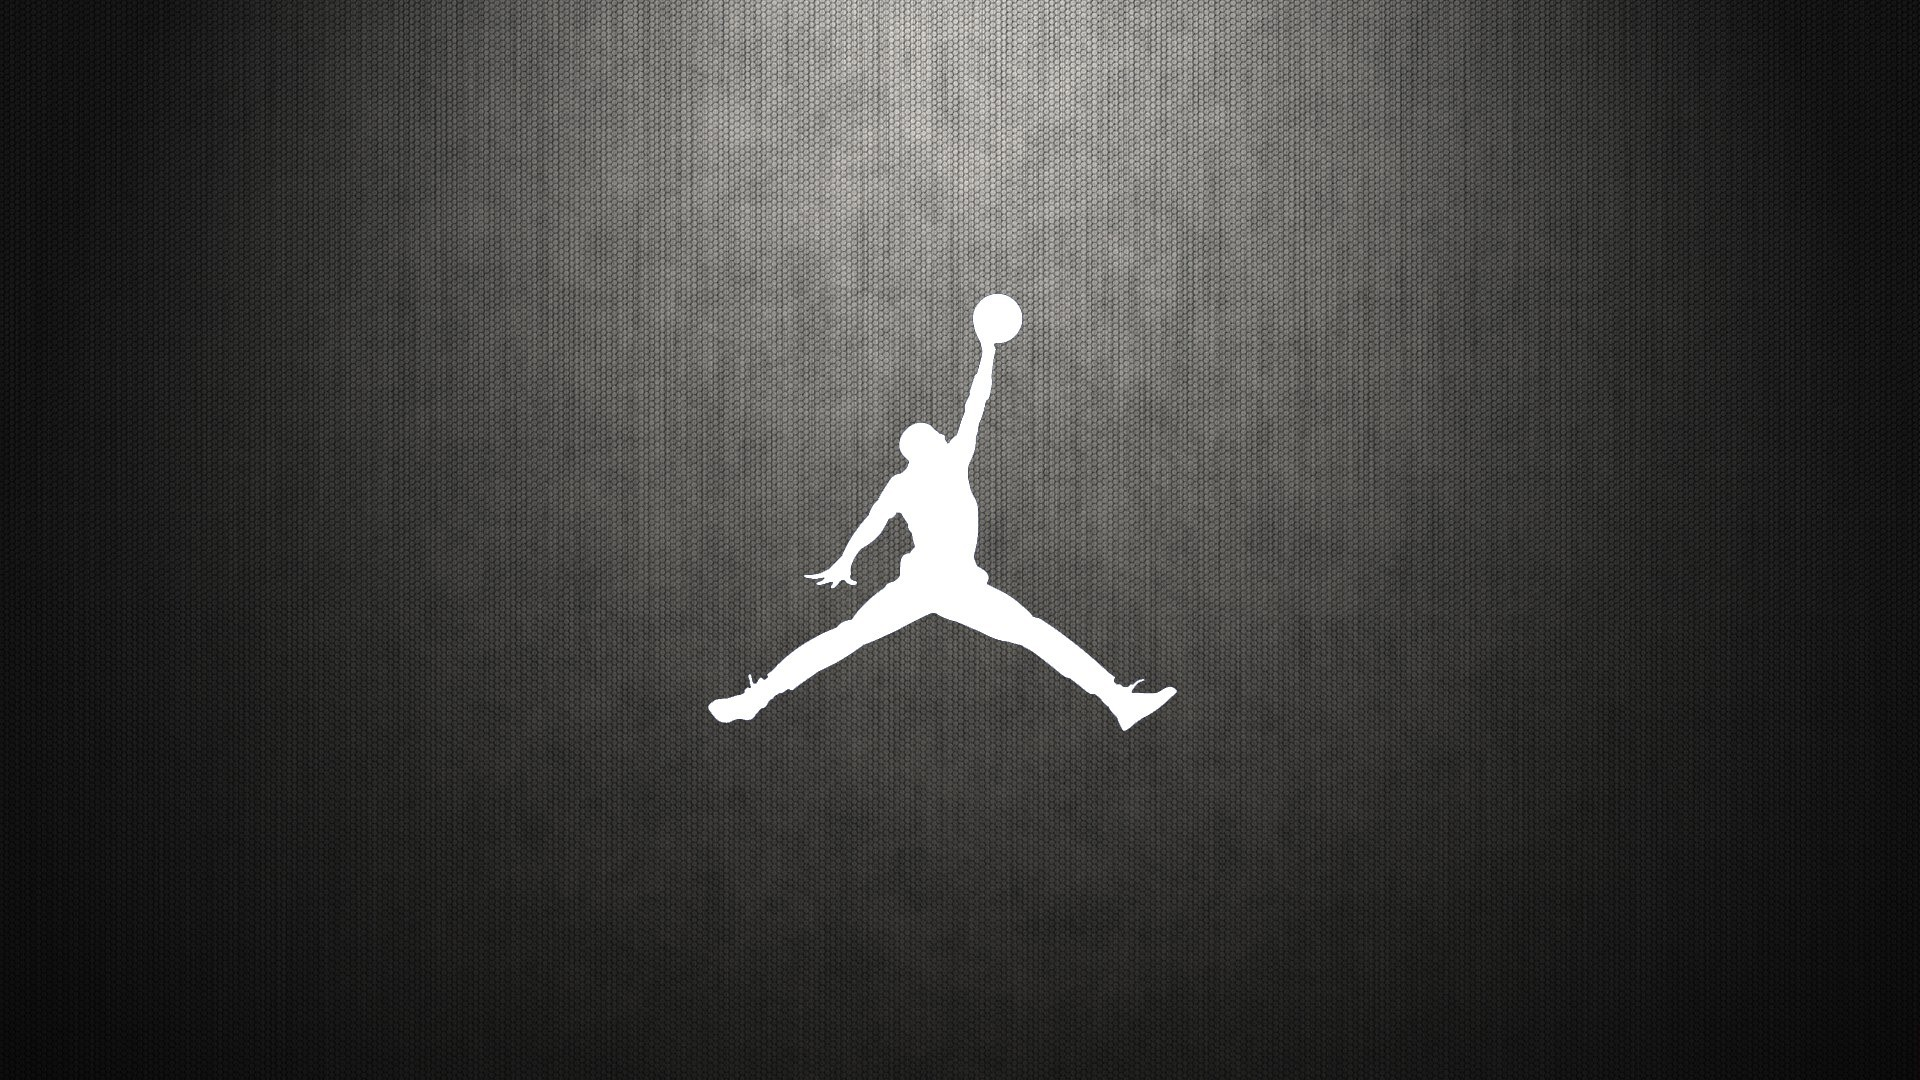 los angeles b62d1 67496 1920x1080 Jordan logo wallpapers